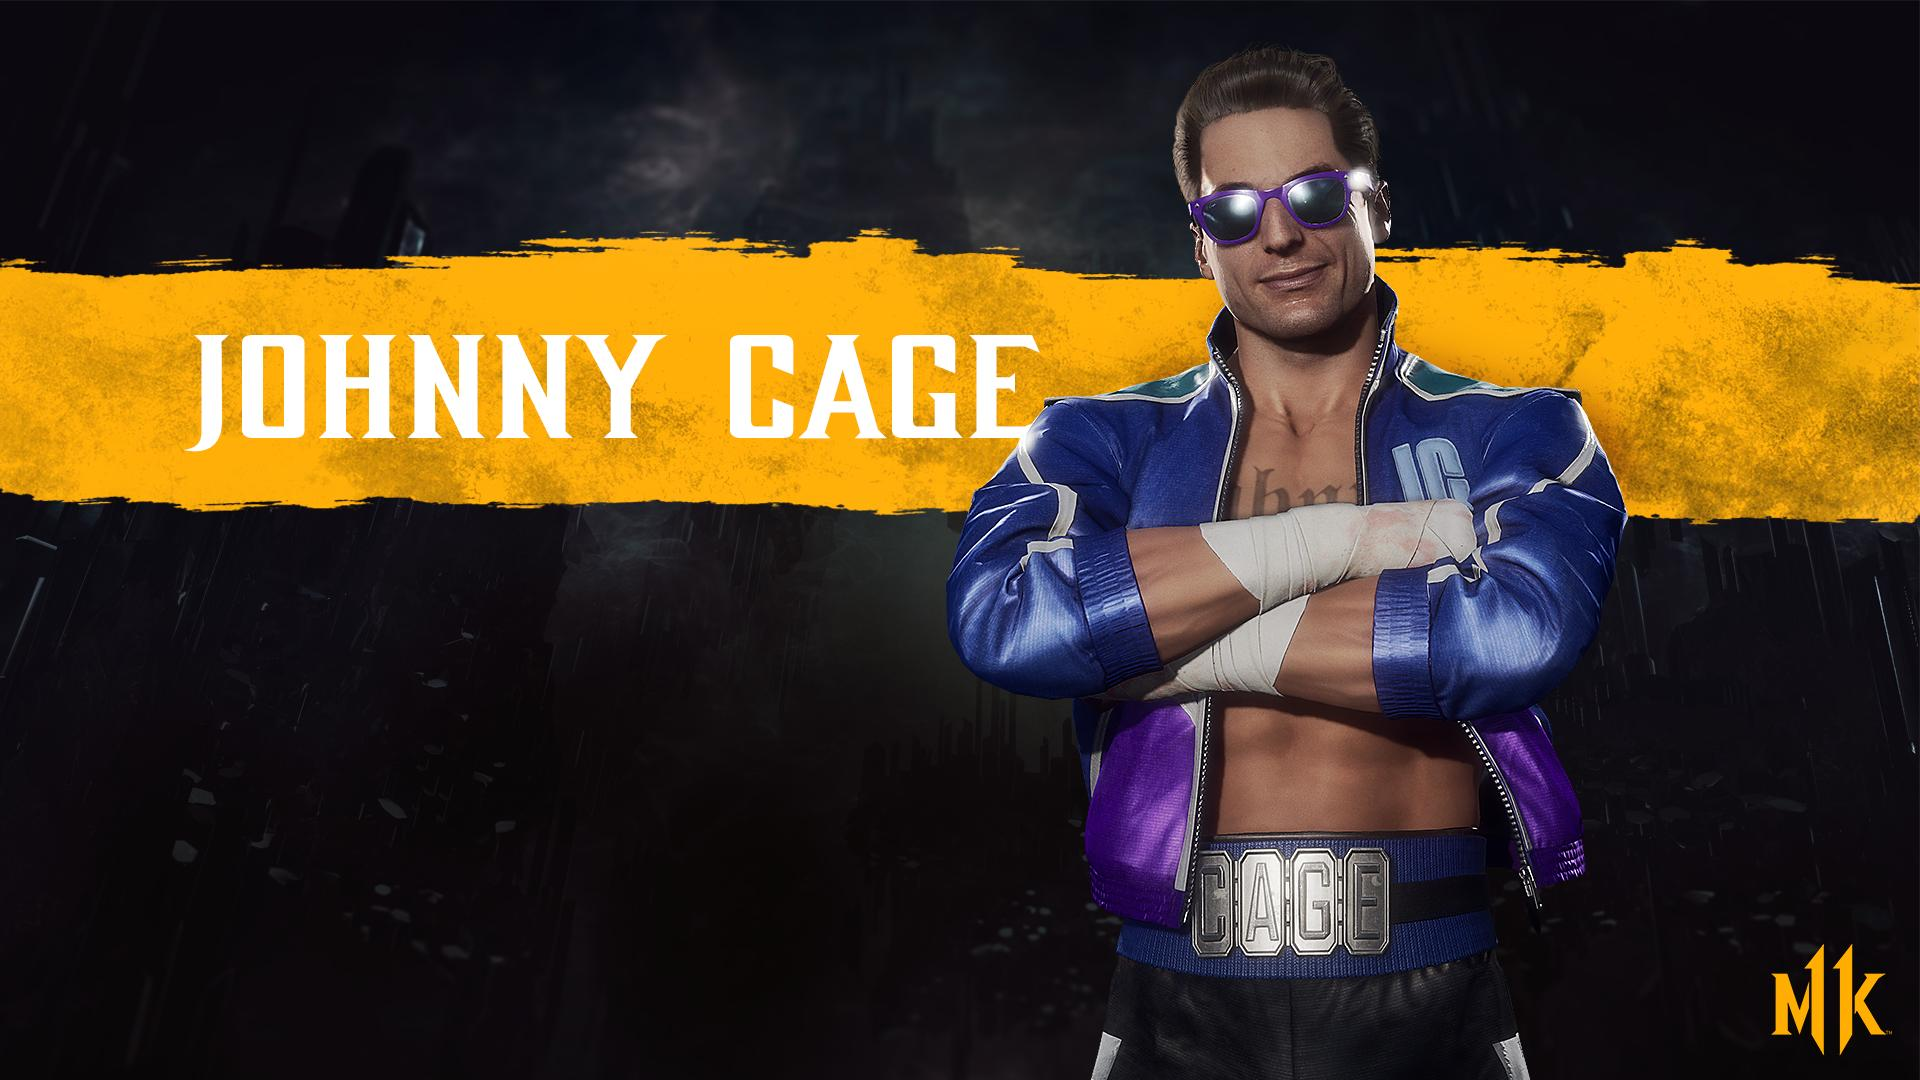 Mortal Kombat 11 background - Johnny Cage